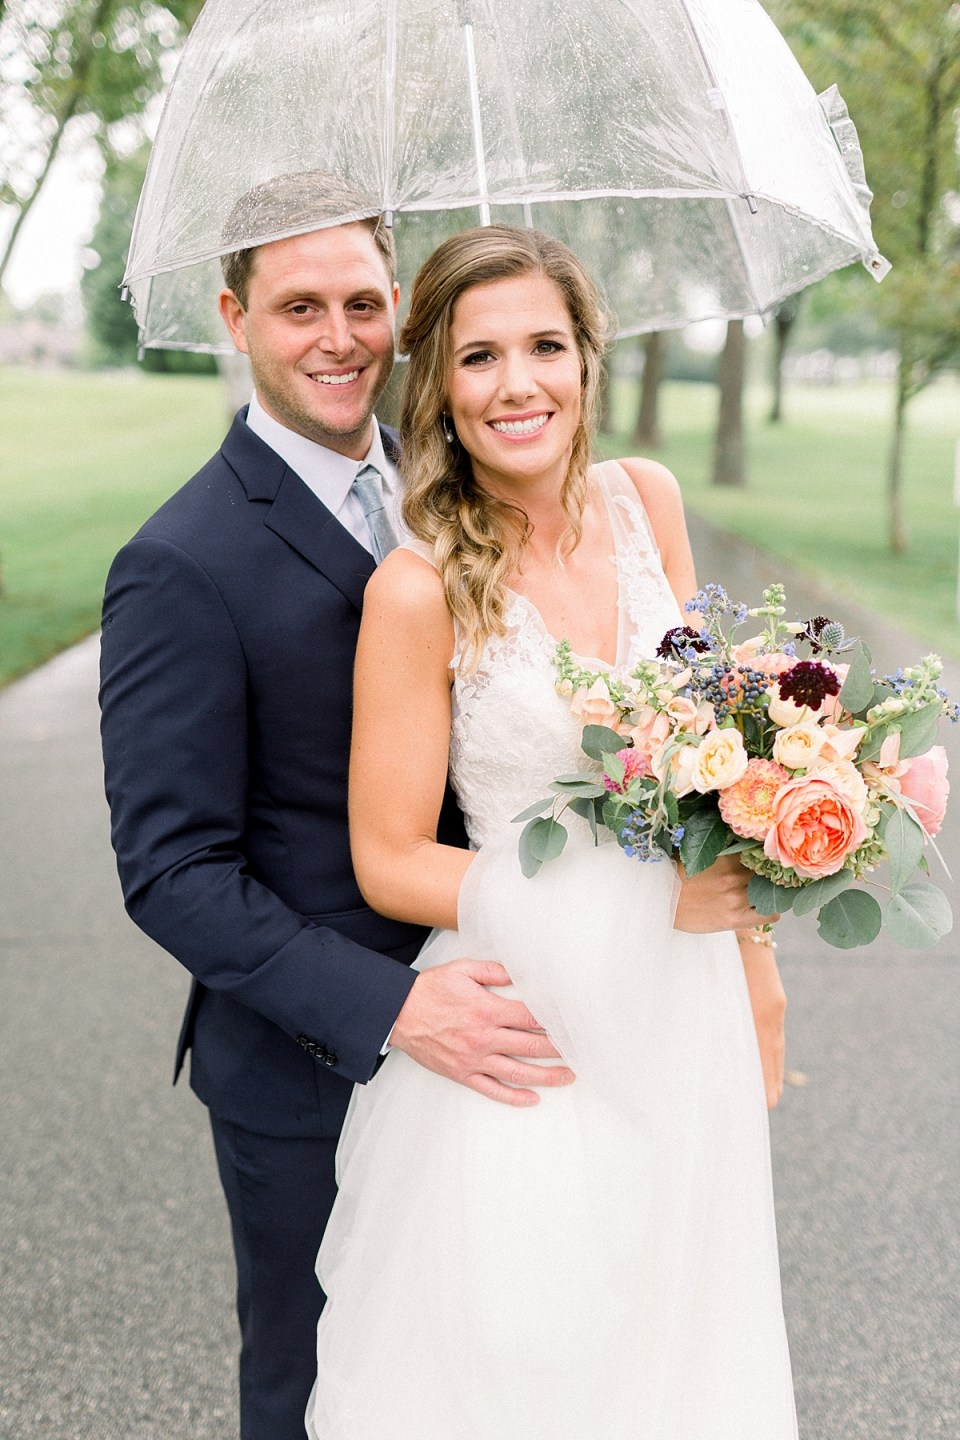 Arielle Peters Photography | Bride and groom smiling in the rain outside on wedding day at Sycamore Hills Golf Club in Fort Wayne, Indiana.